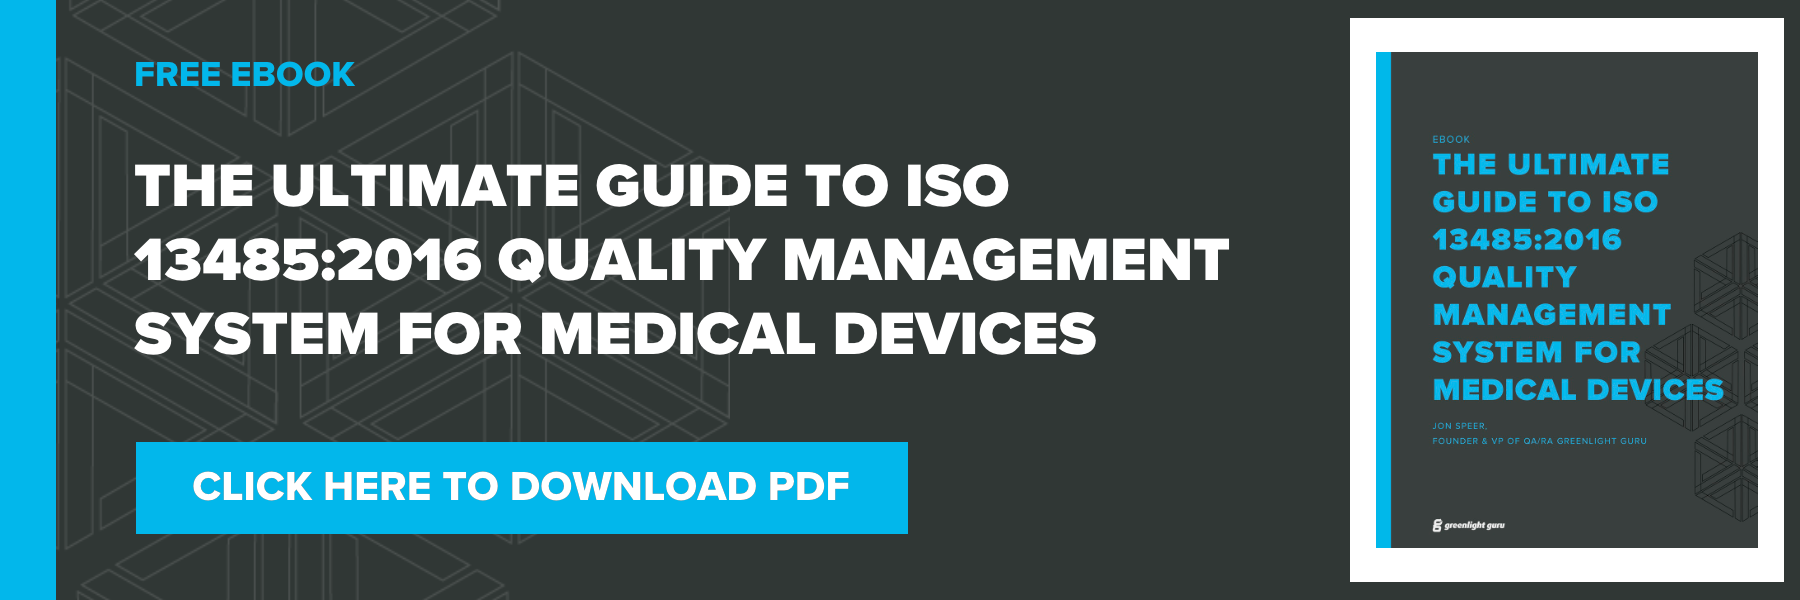 ISO 13485 2016 quality management system QMS for medical devices PDF download